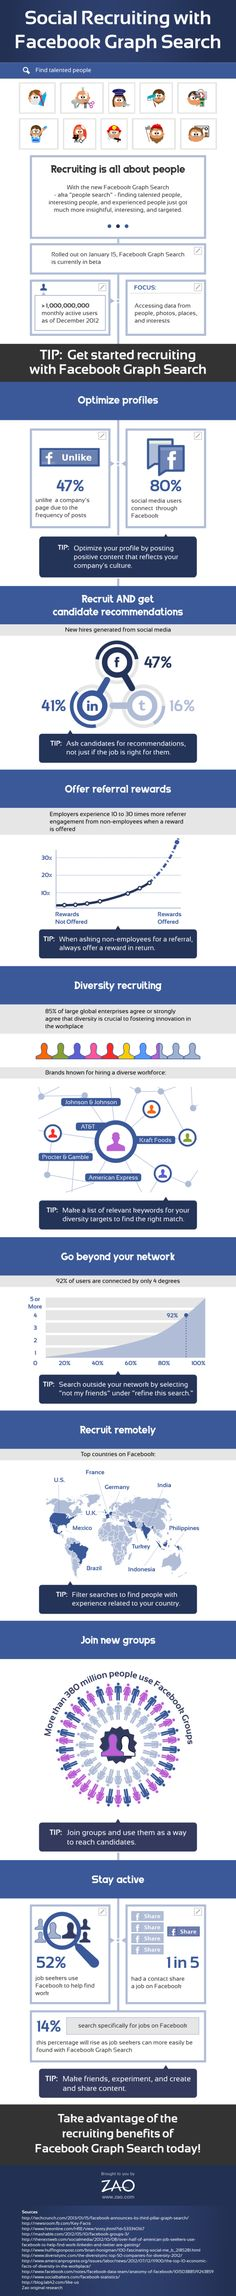 Social Recruiting with Facebook Graph Search